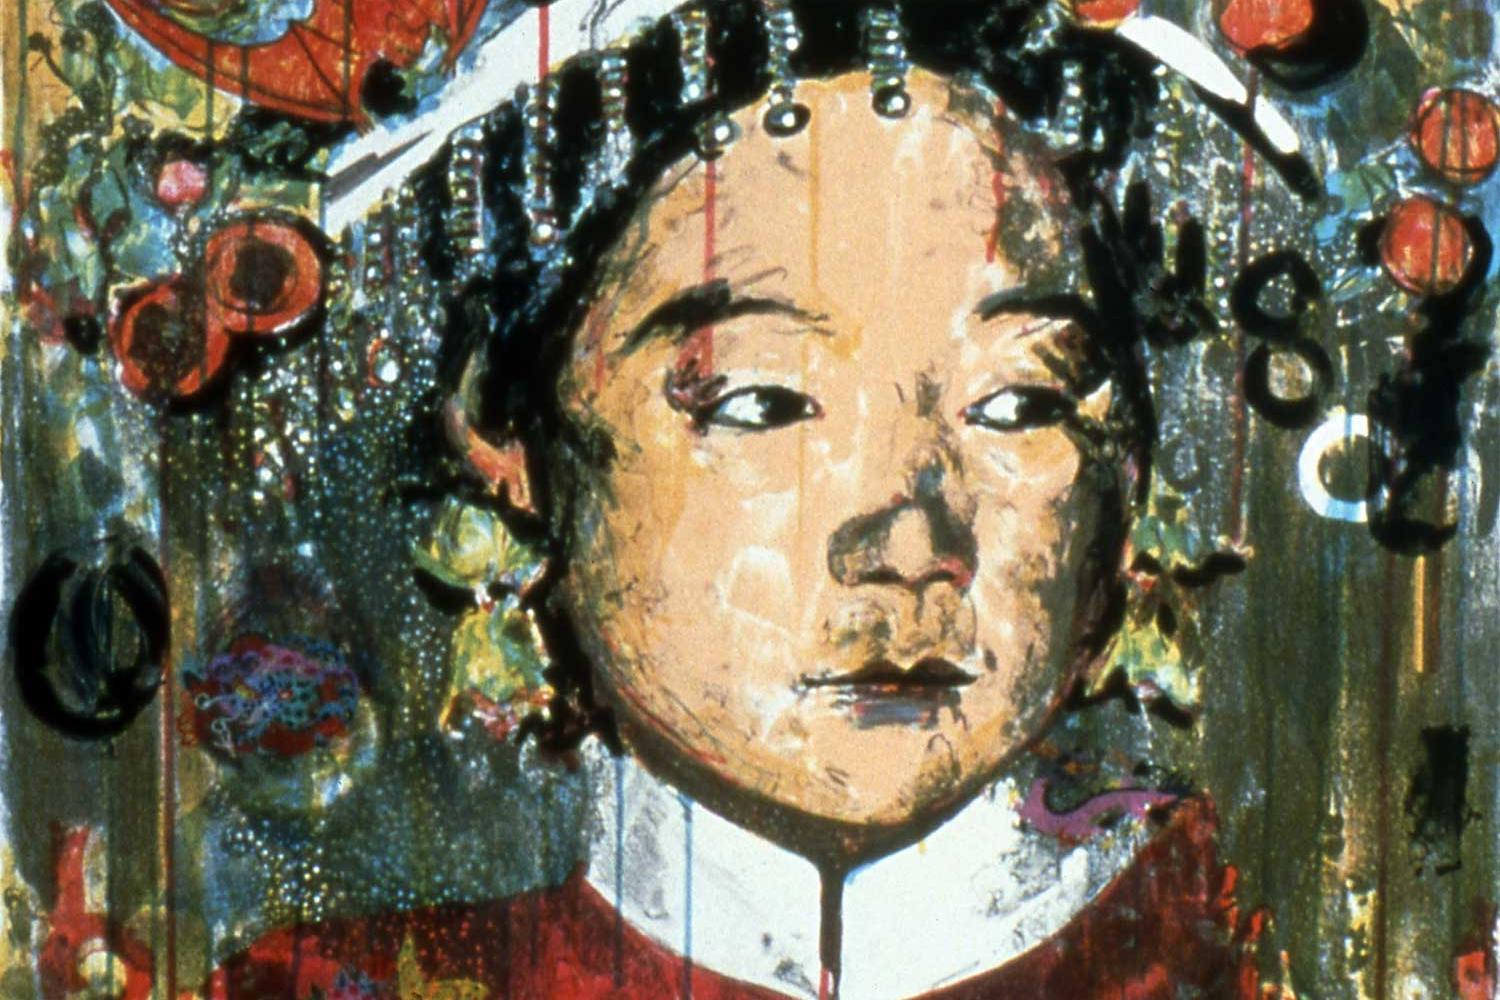 highly stylized painting of a Chinese woman in a traditional hat.